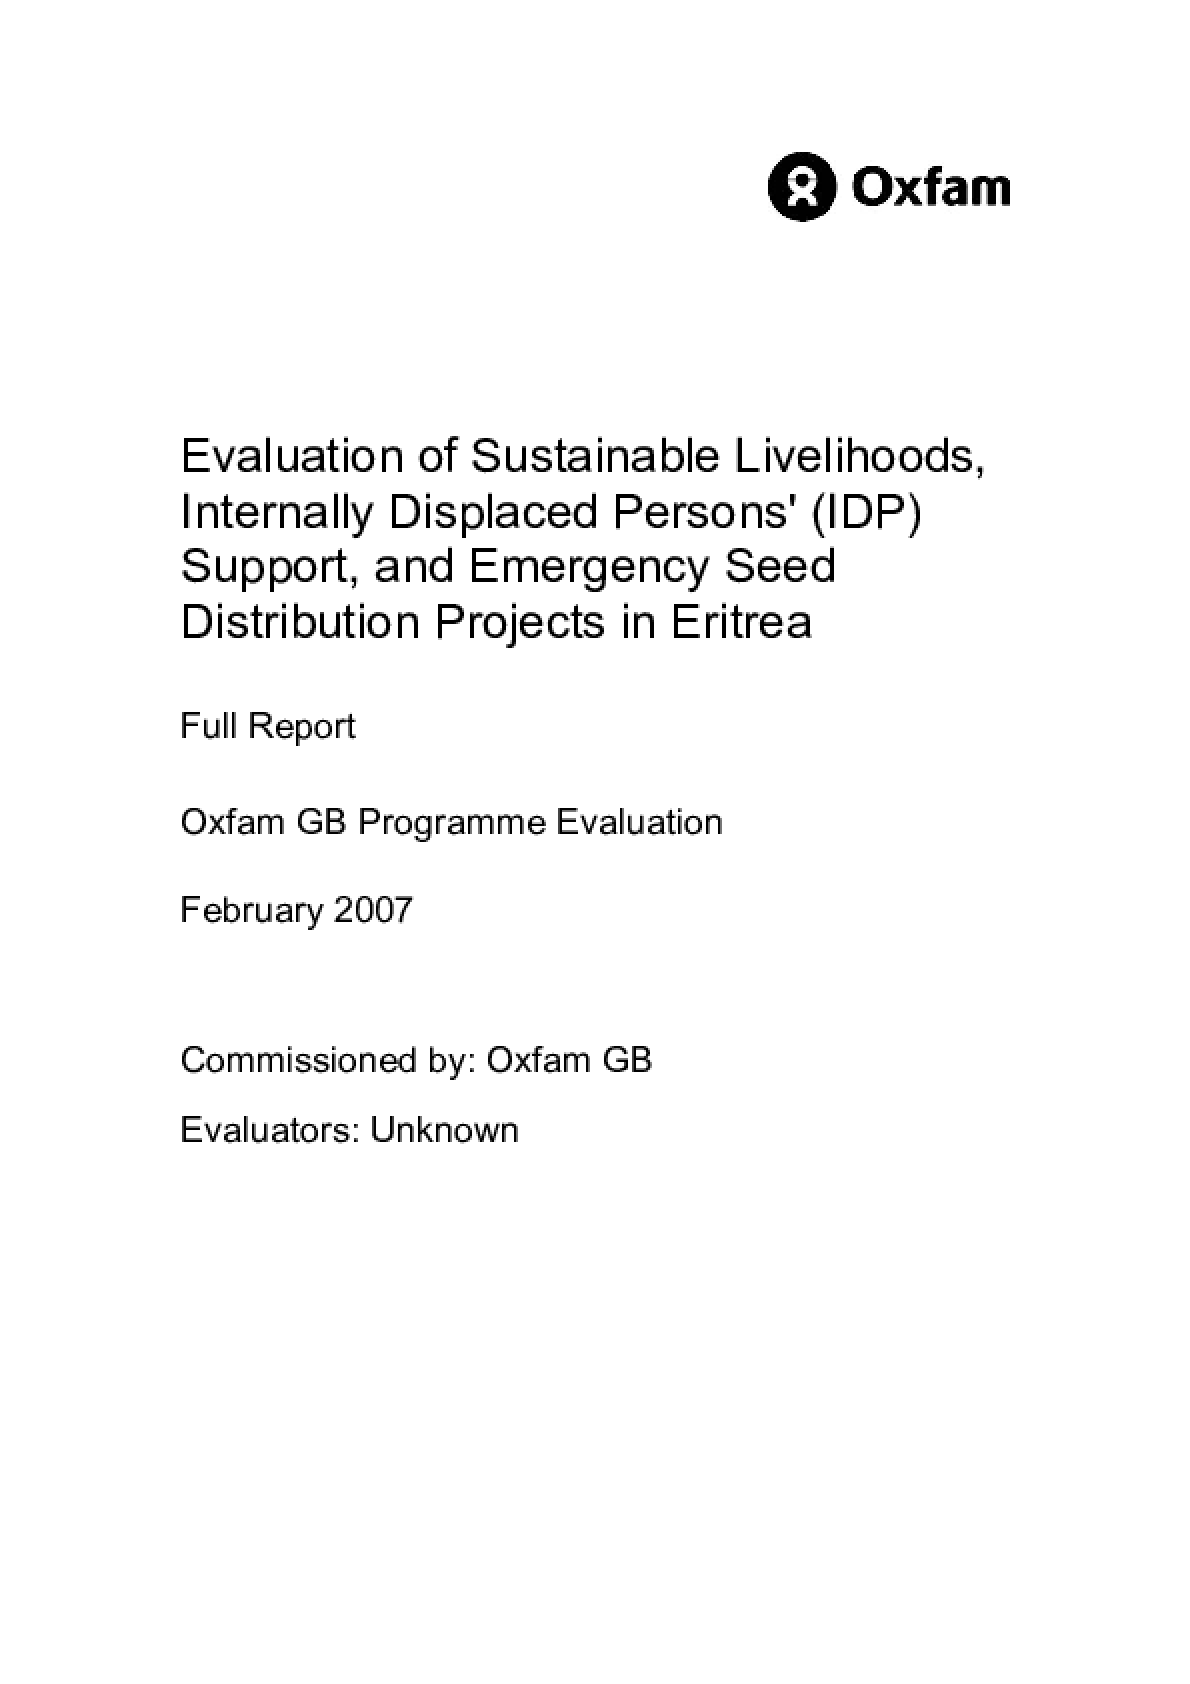 Evaluation of Sustainable Livelihoods, Internally Displaced Persons' (IDP) Support, and Emergency Seed Distribution Projects in Eritrea